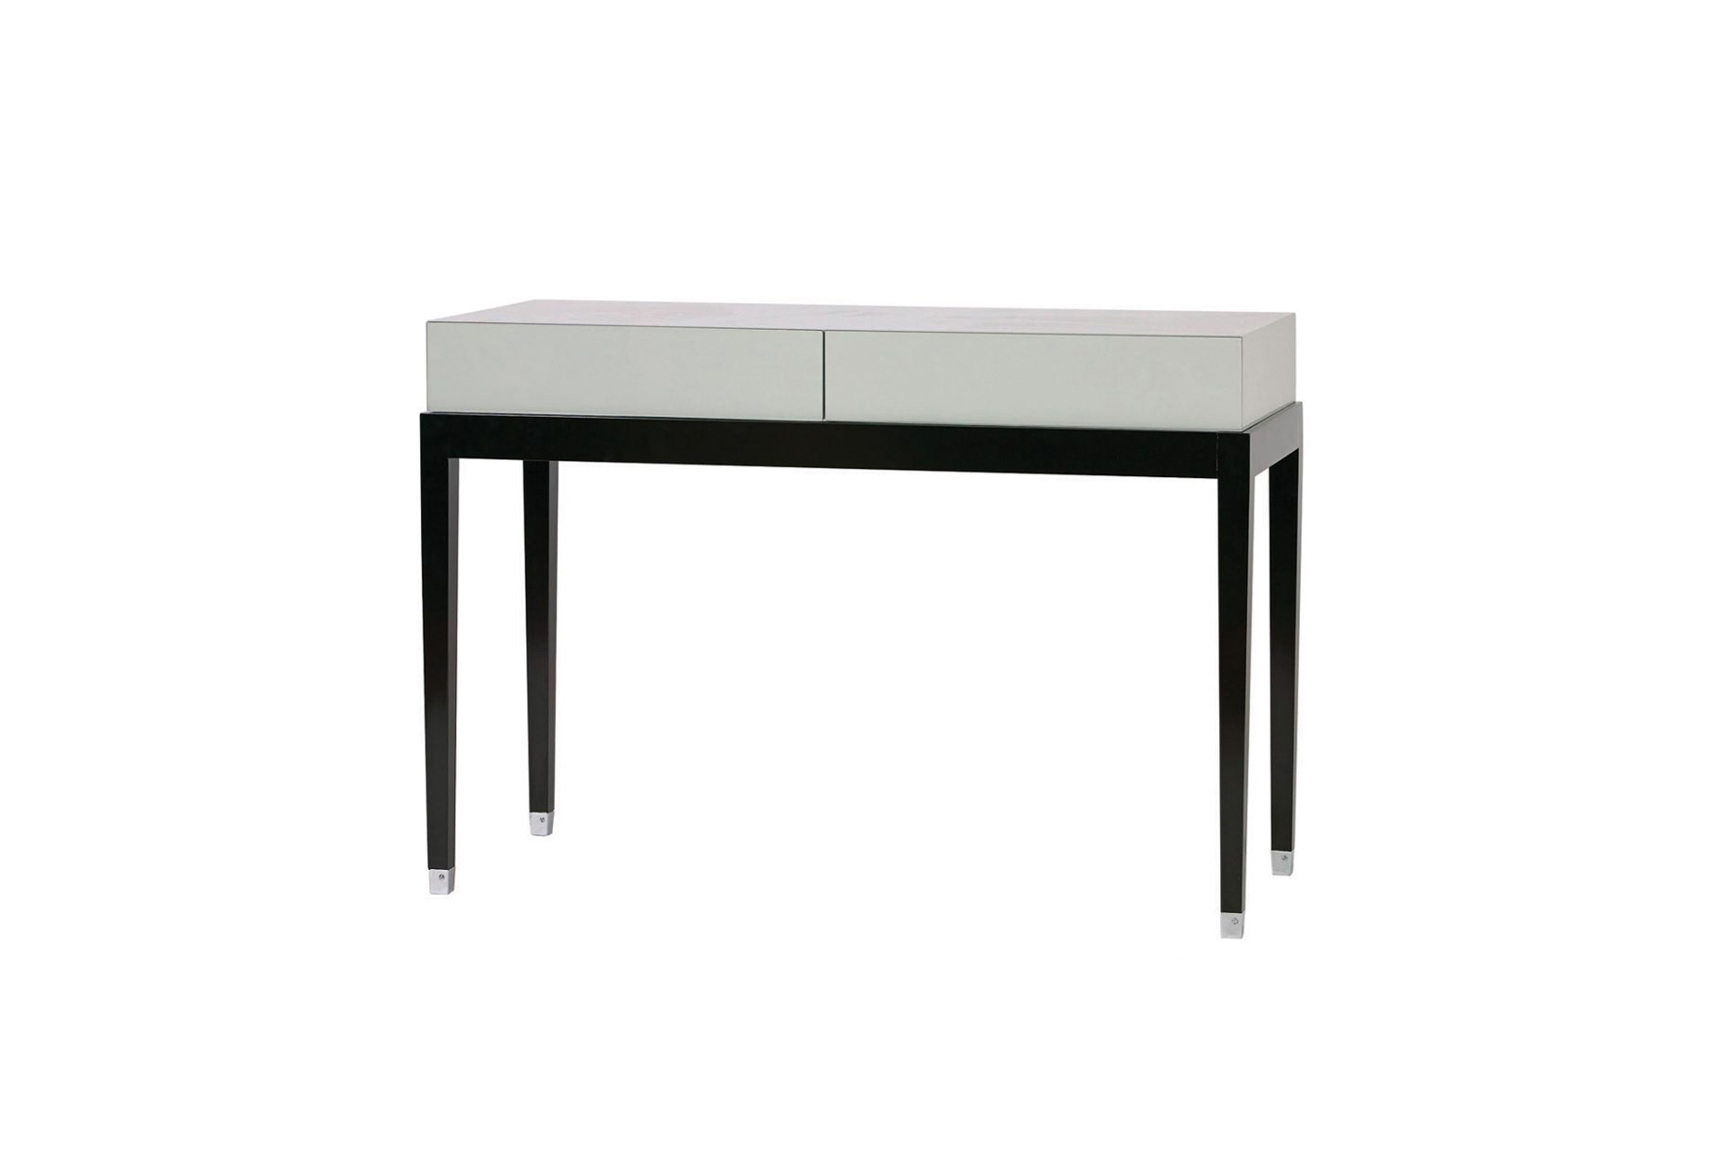 Console Tables Archives – Jan Cavelle Inside Archive Grey Console Tables (View 4 of 20)